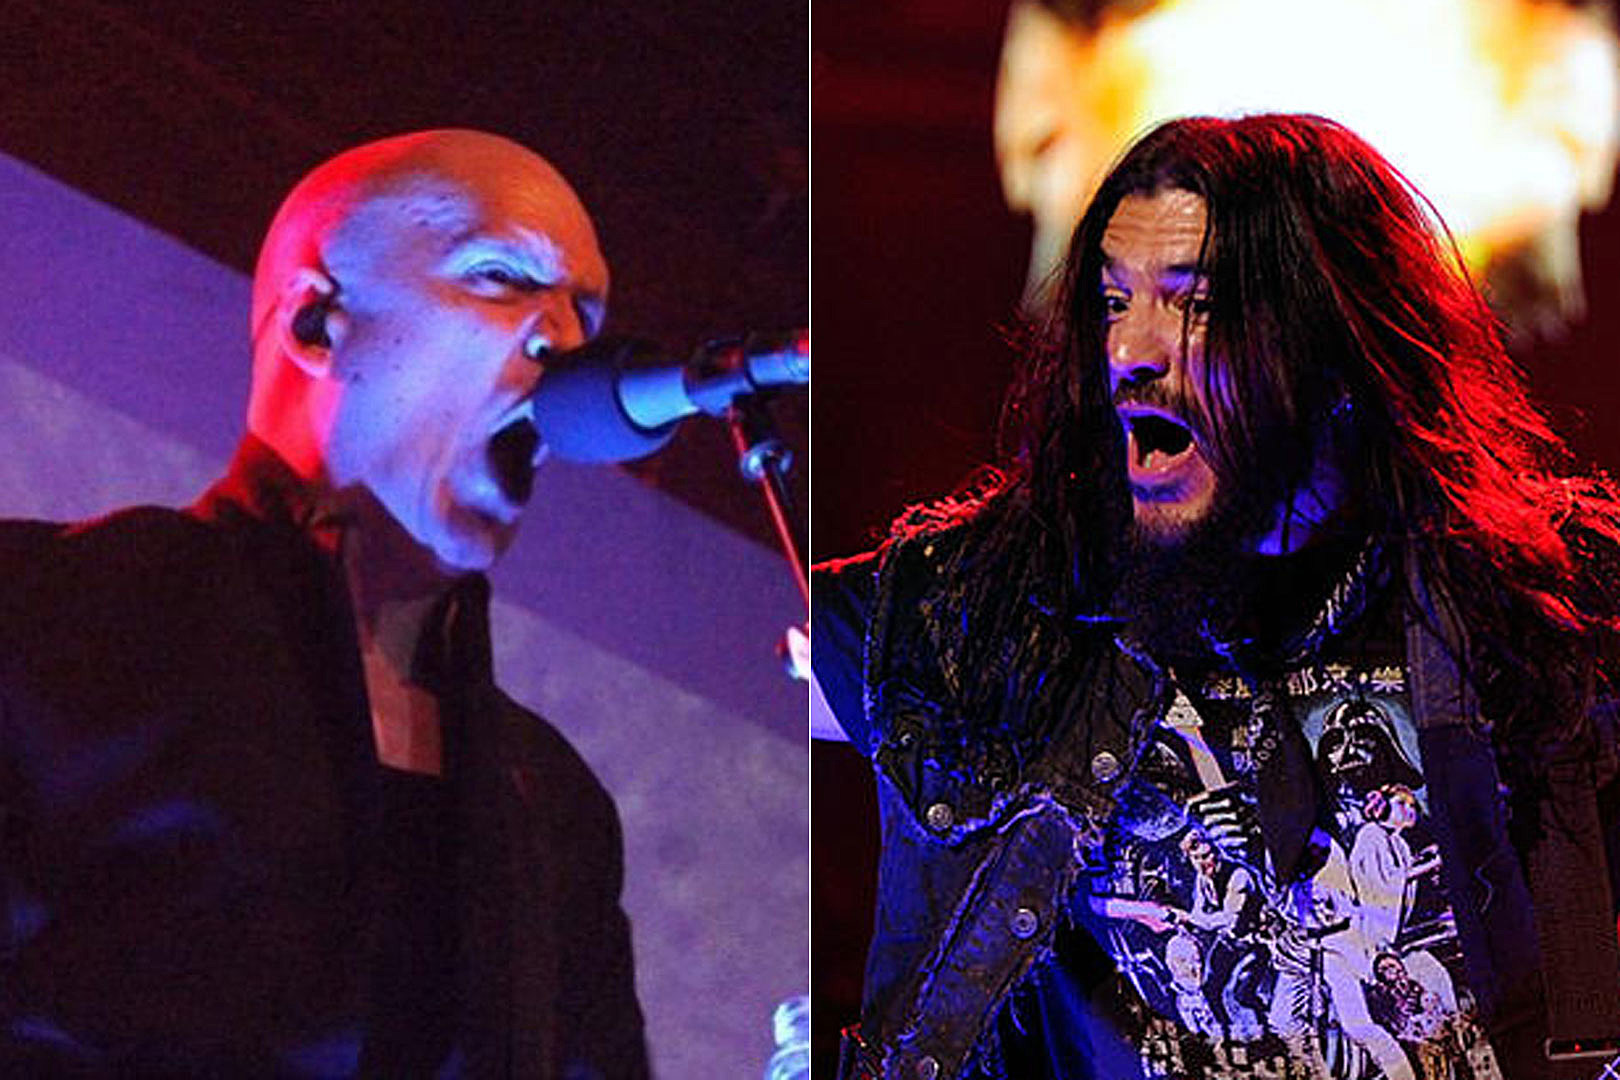 Devin Townsend Downplays Machine Head Riff Similarities, Robb Flynn Responds